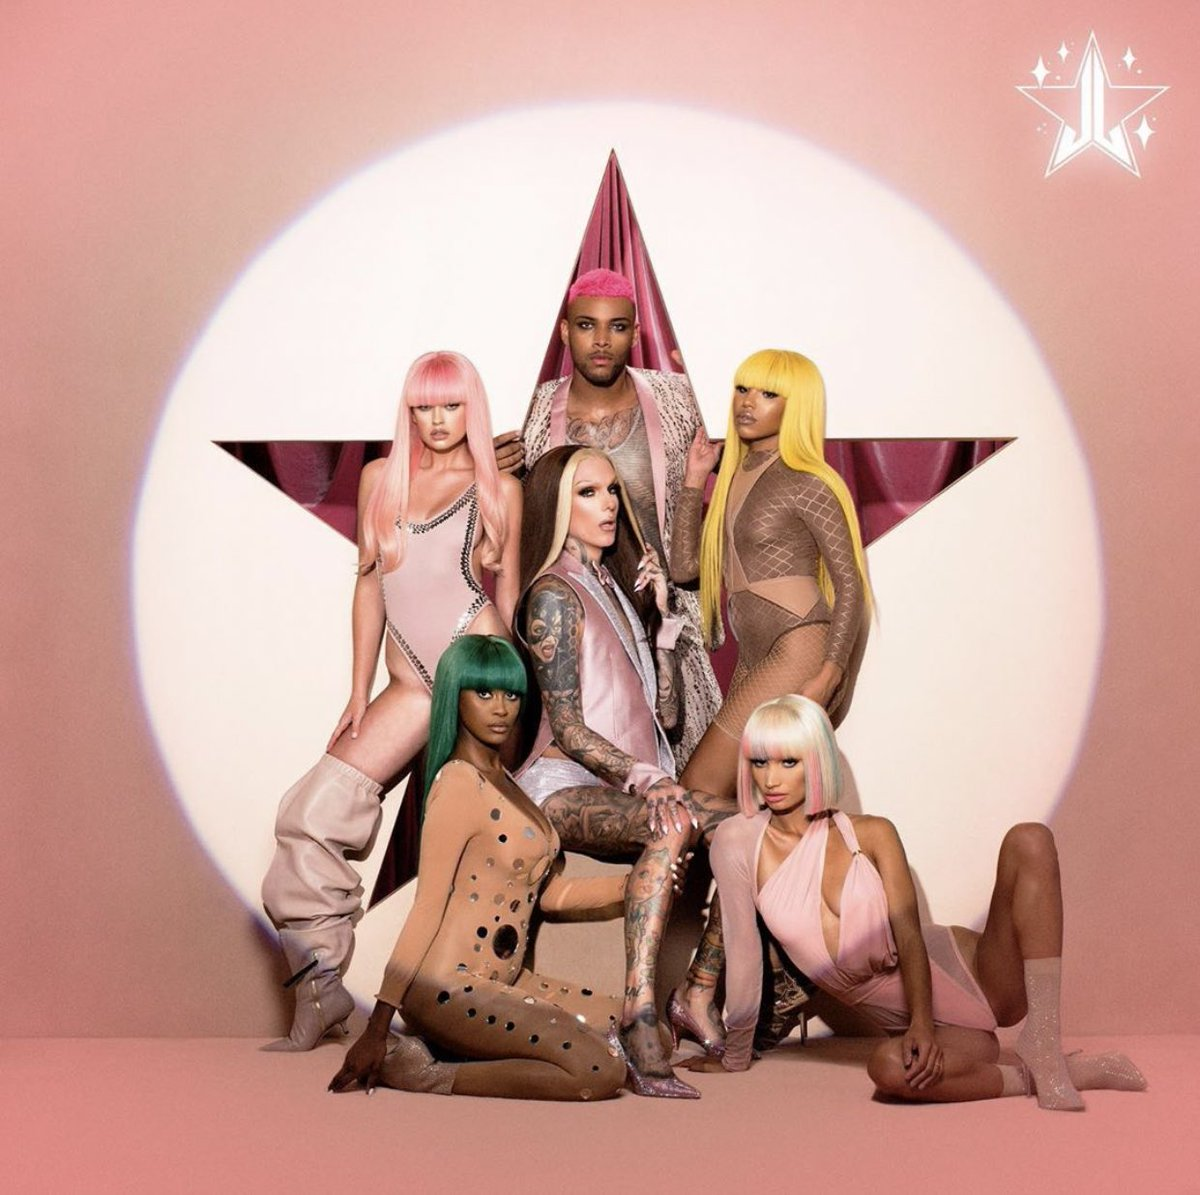 TOMORROW the #MagicStar concealer & powder shade extension launches!!  💖 #JeffreeStarCosmetics now has 48 shades of stunning concealer ⭐️ https://t.co/teu6Nr92Lp